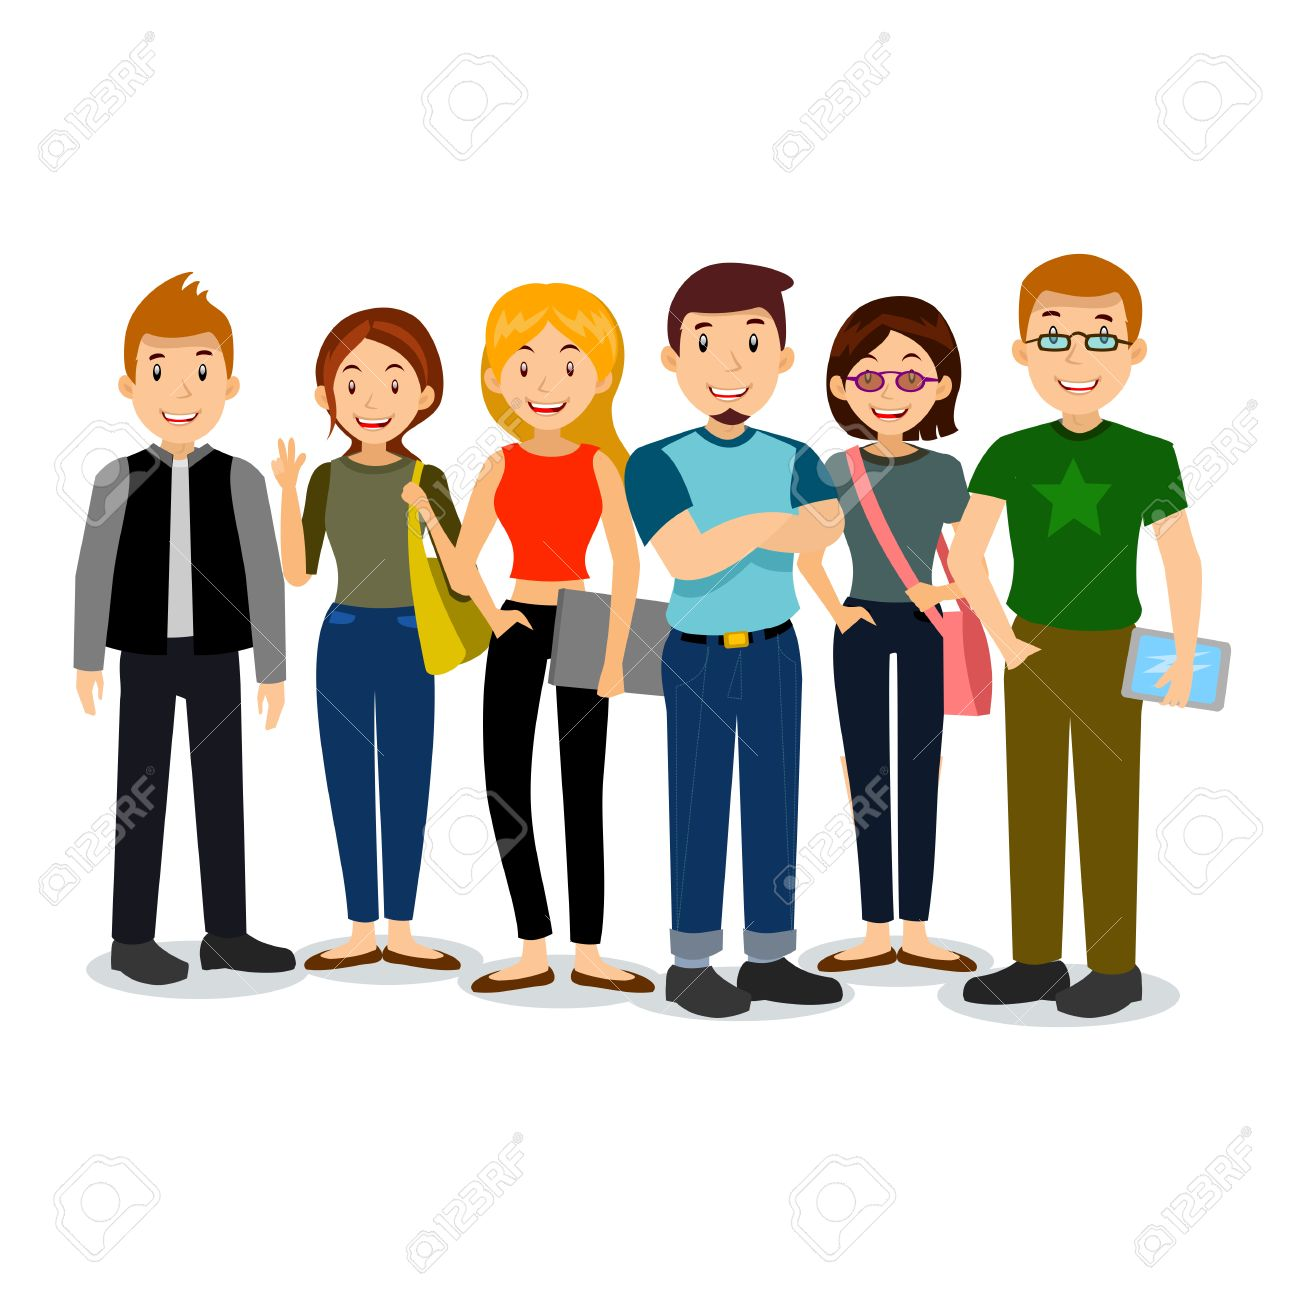 Set of diverse college or university students. Vector group of students. Cartoon vector illustration of students. - 52243806